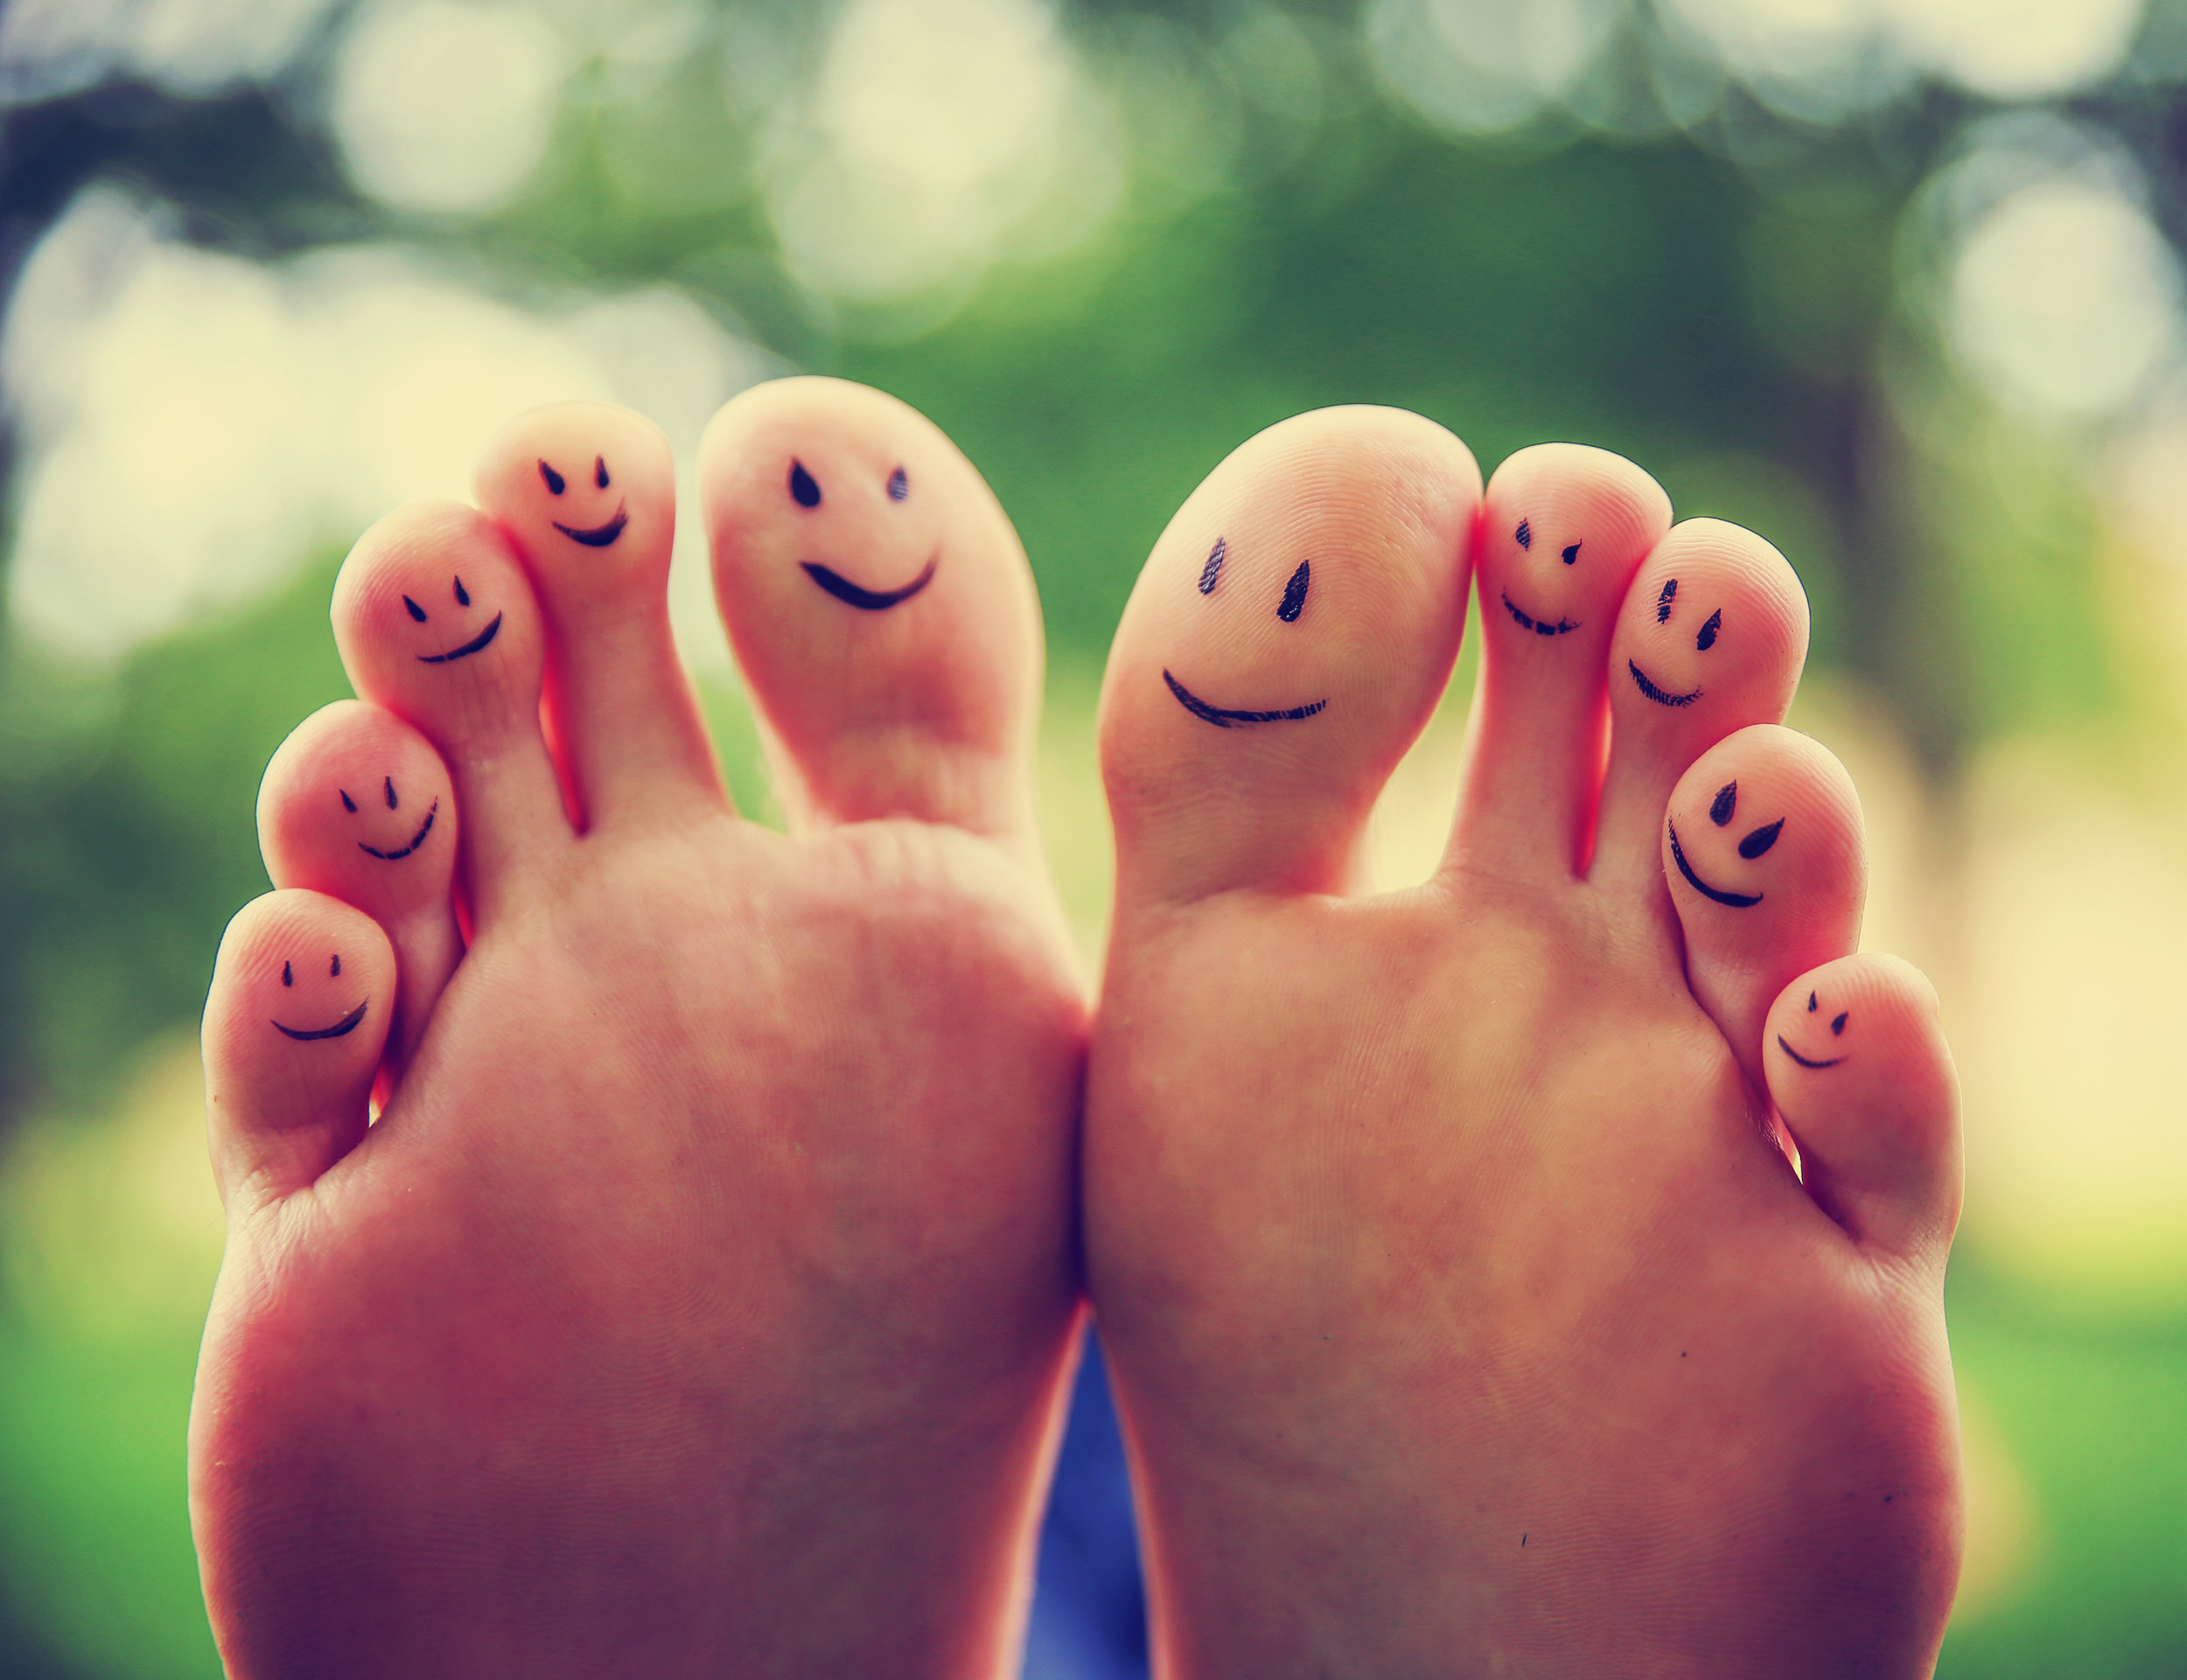 bigstock-smiley-faces-on-a-pair-of-feet-96220277.jpg